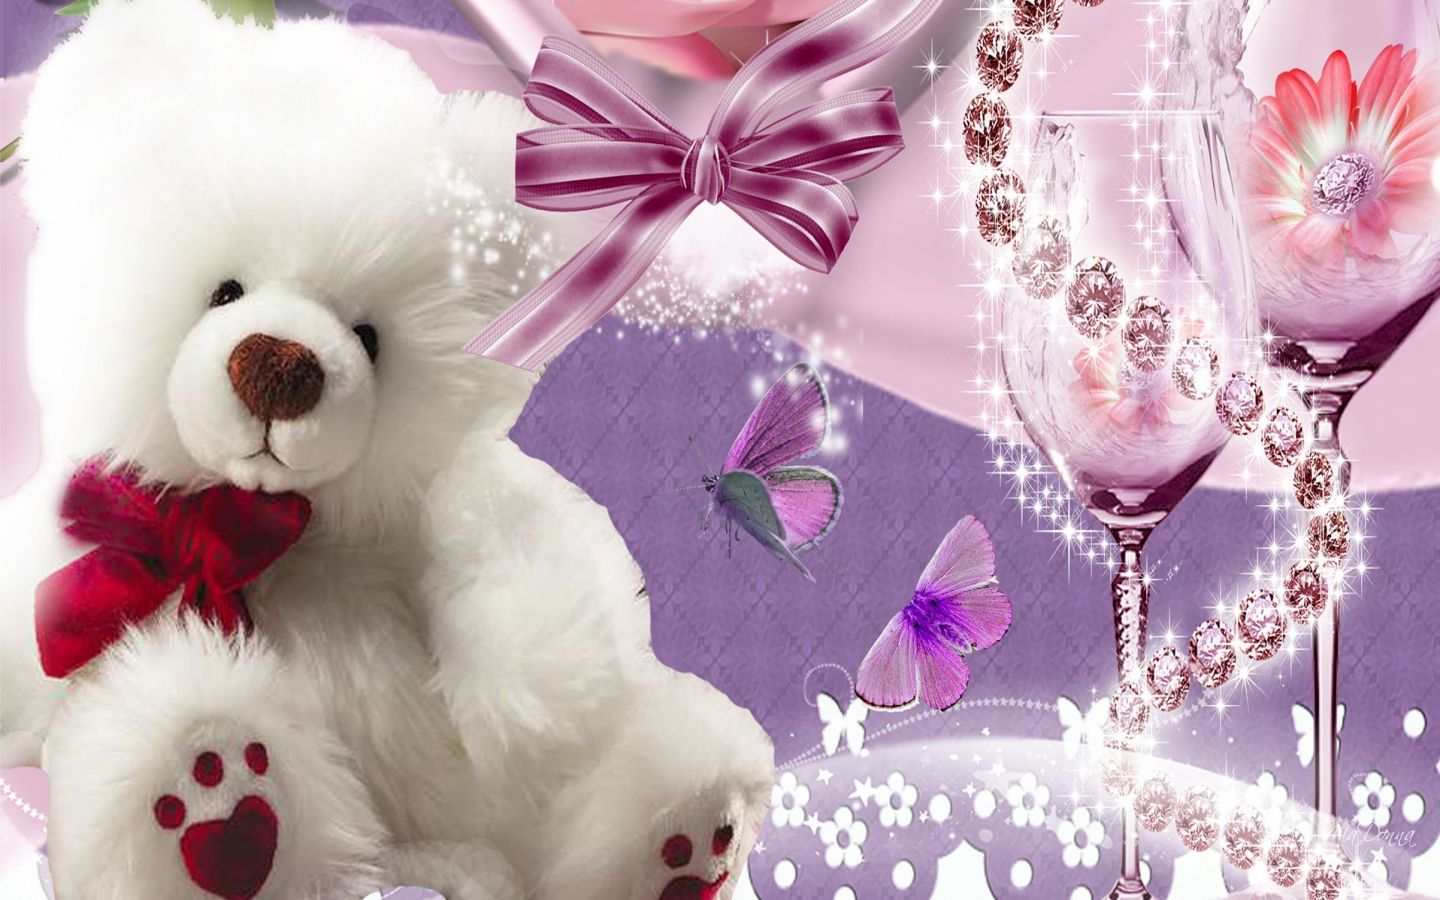 Cute teddy bear pictures hd images free download desktop cute teddy bear pictures hd images free download desktop voltagebd Gallery